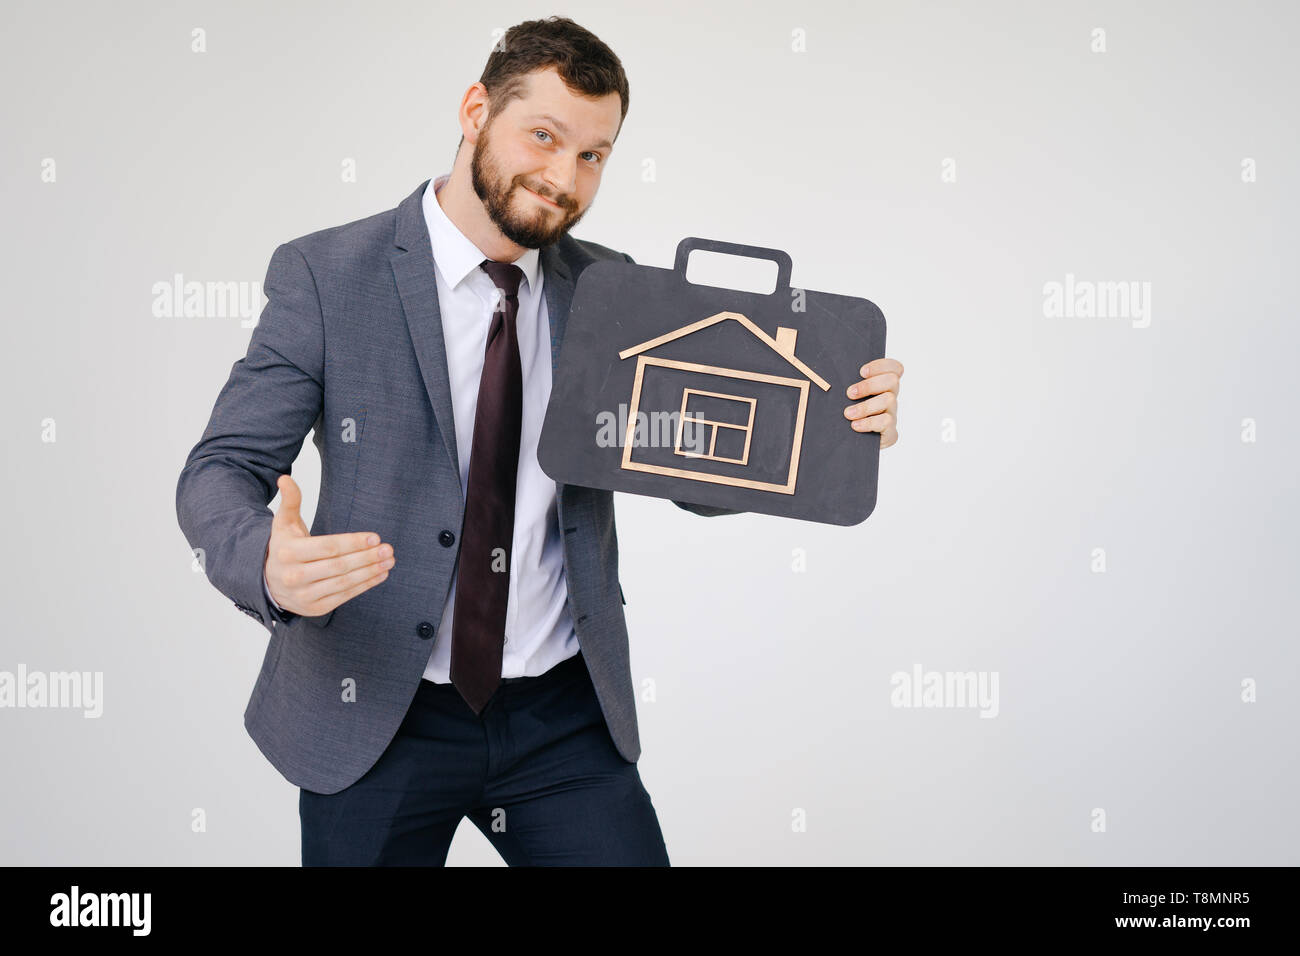 Businessman in suit portrait hold briefcase in hand - Stock Image